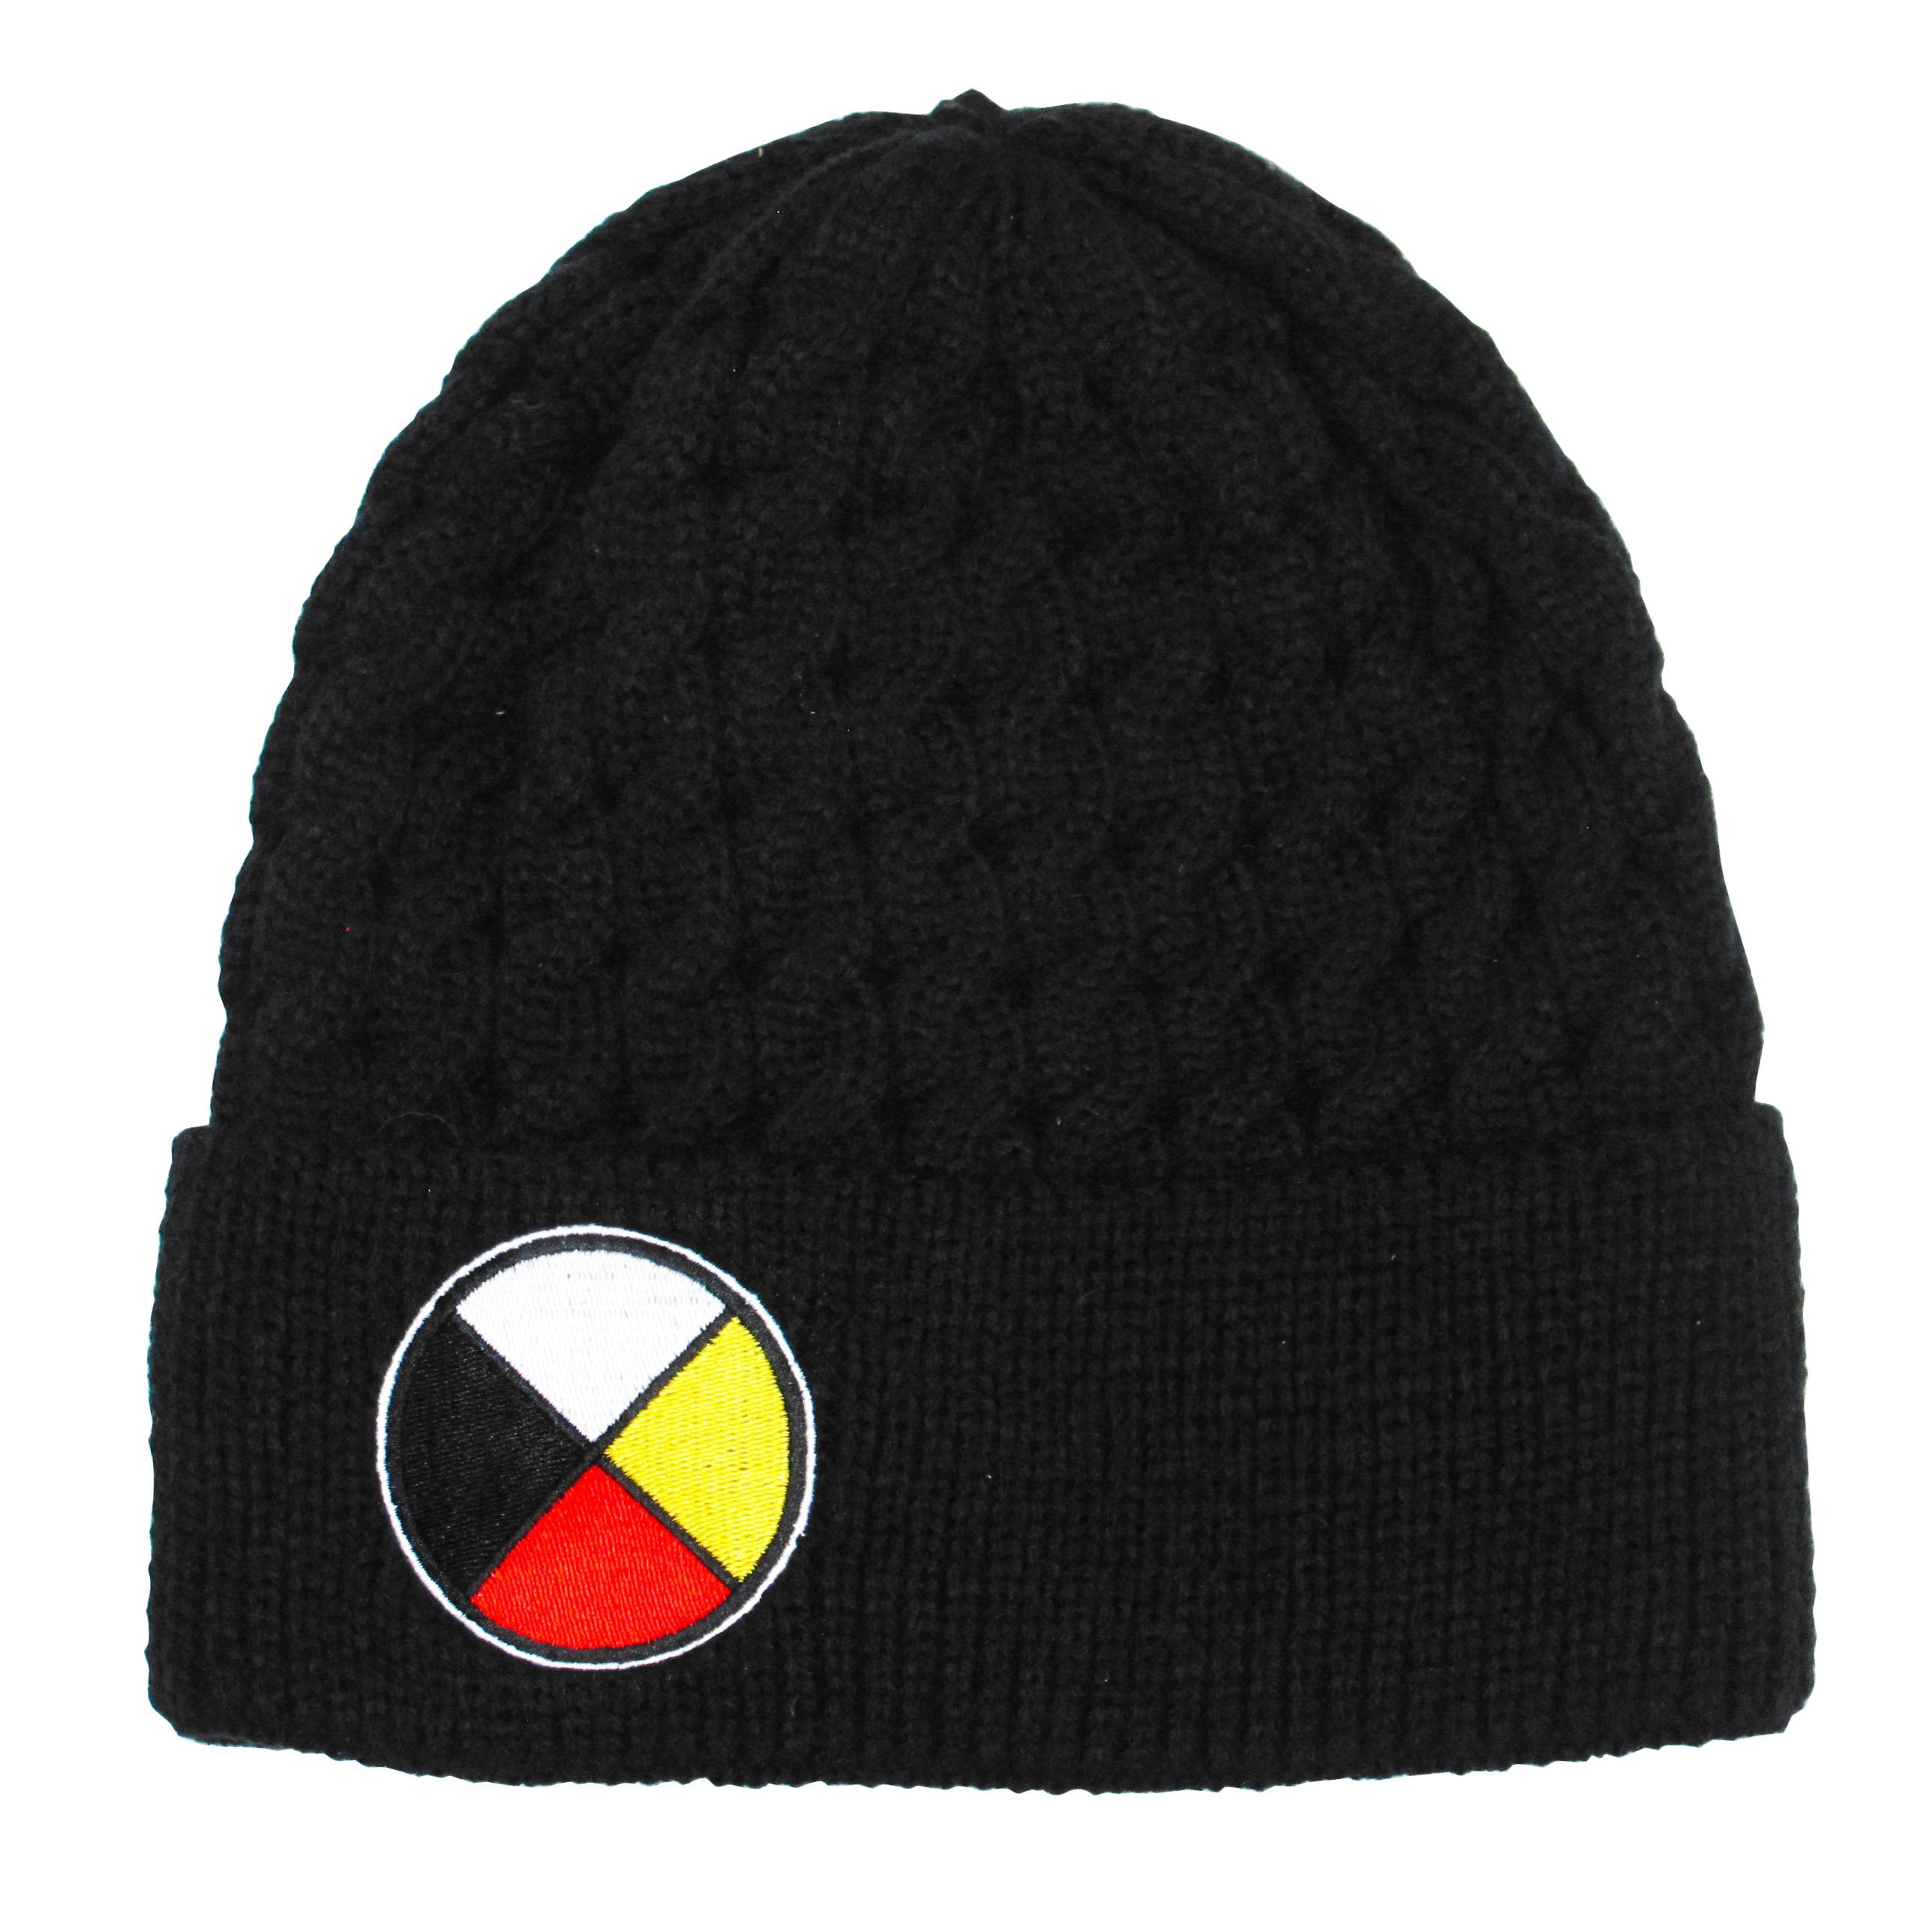 Medicine Wheel Embroidered Knitted Hat